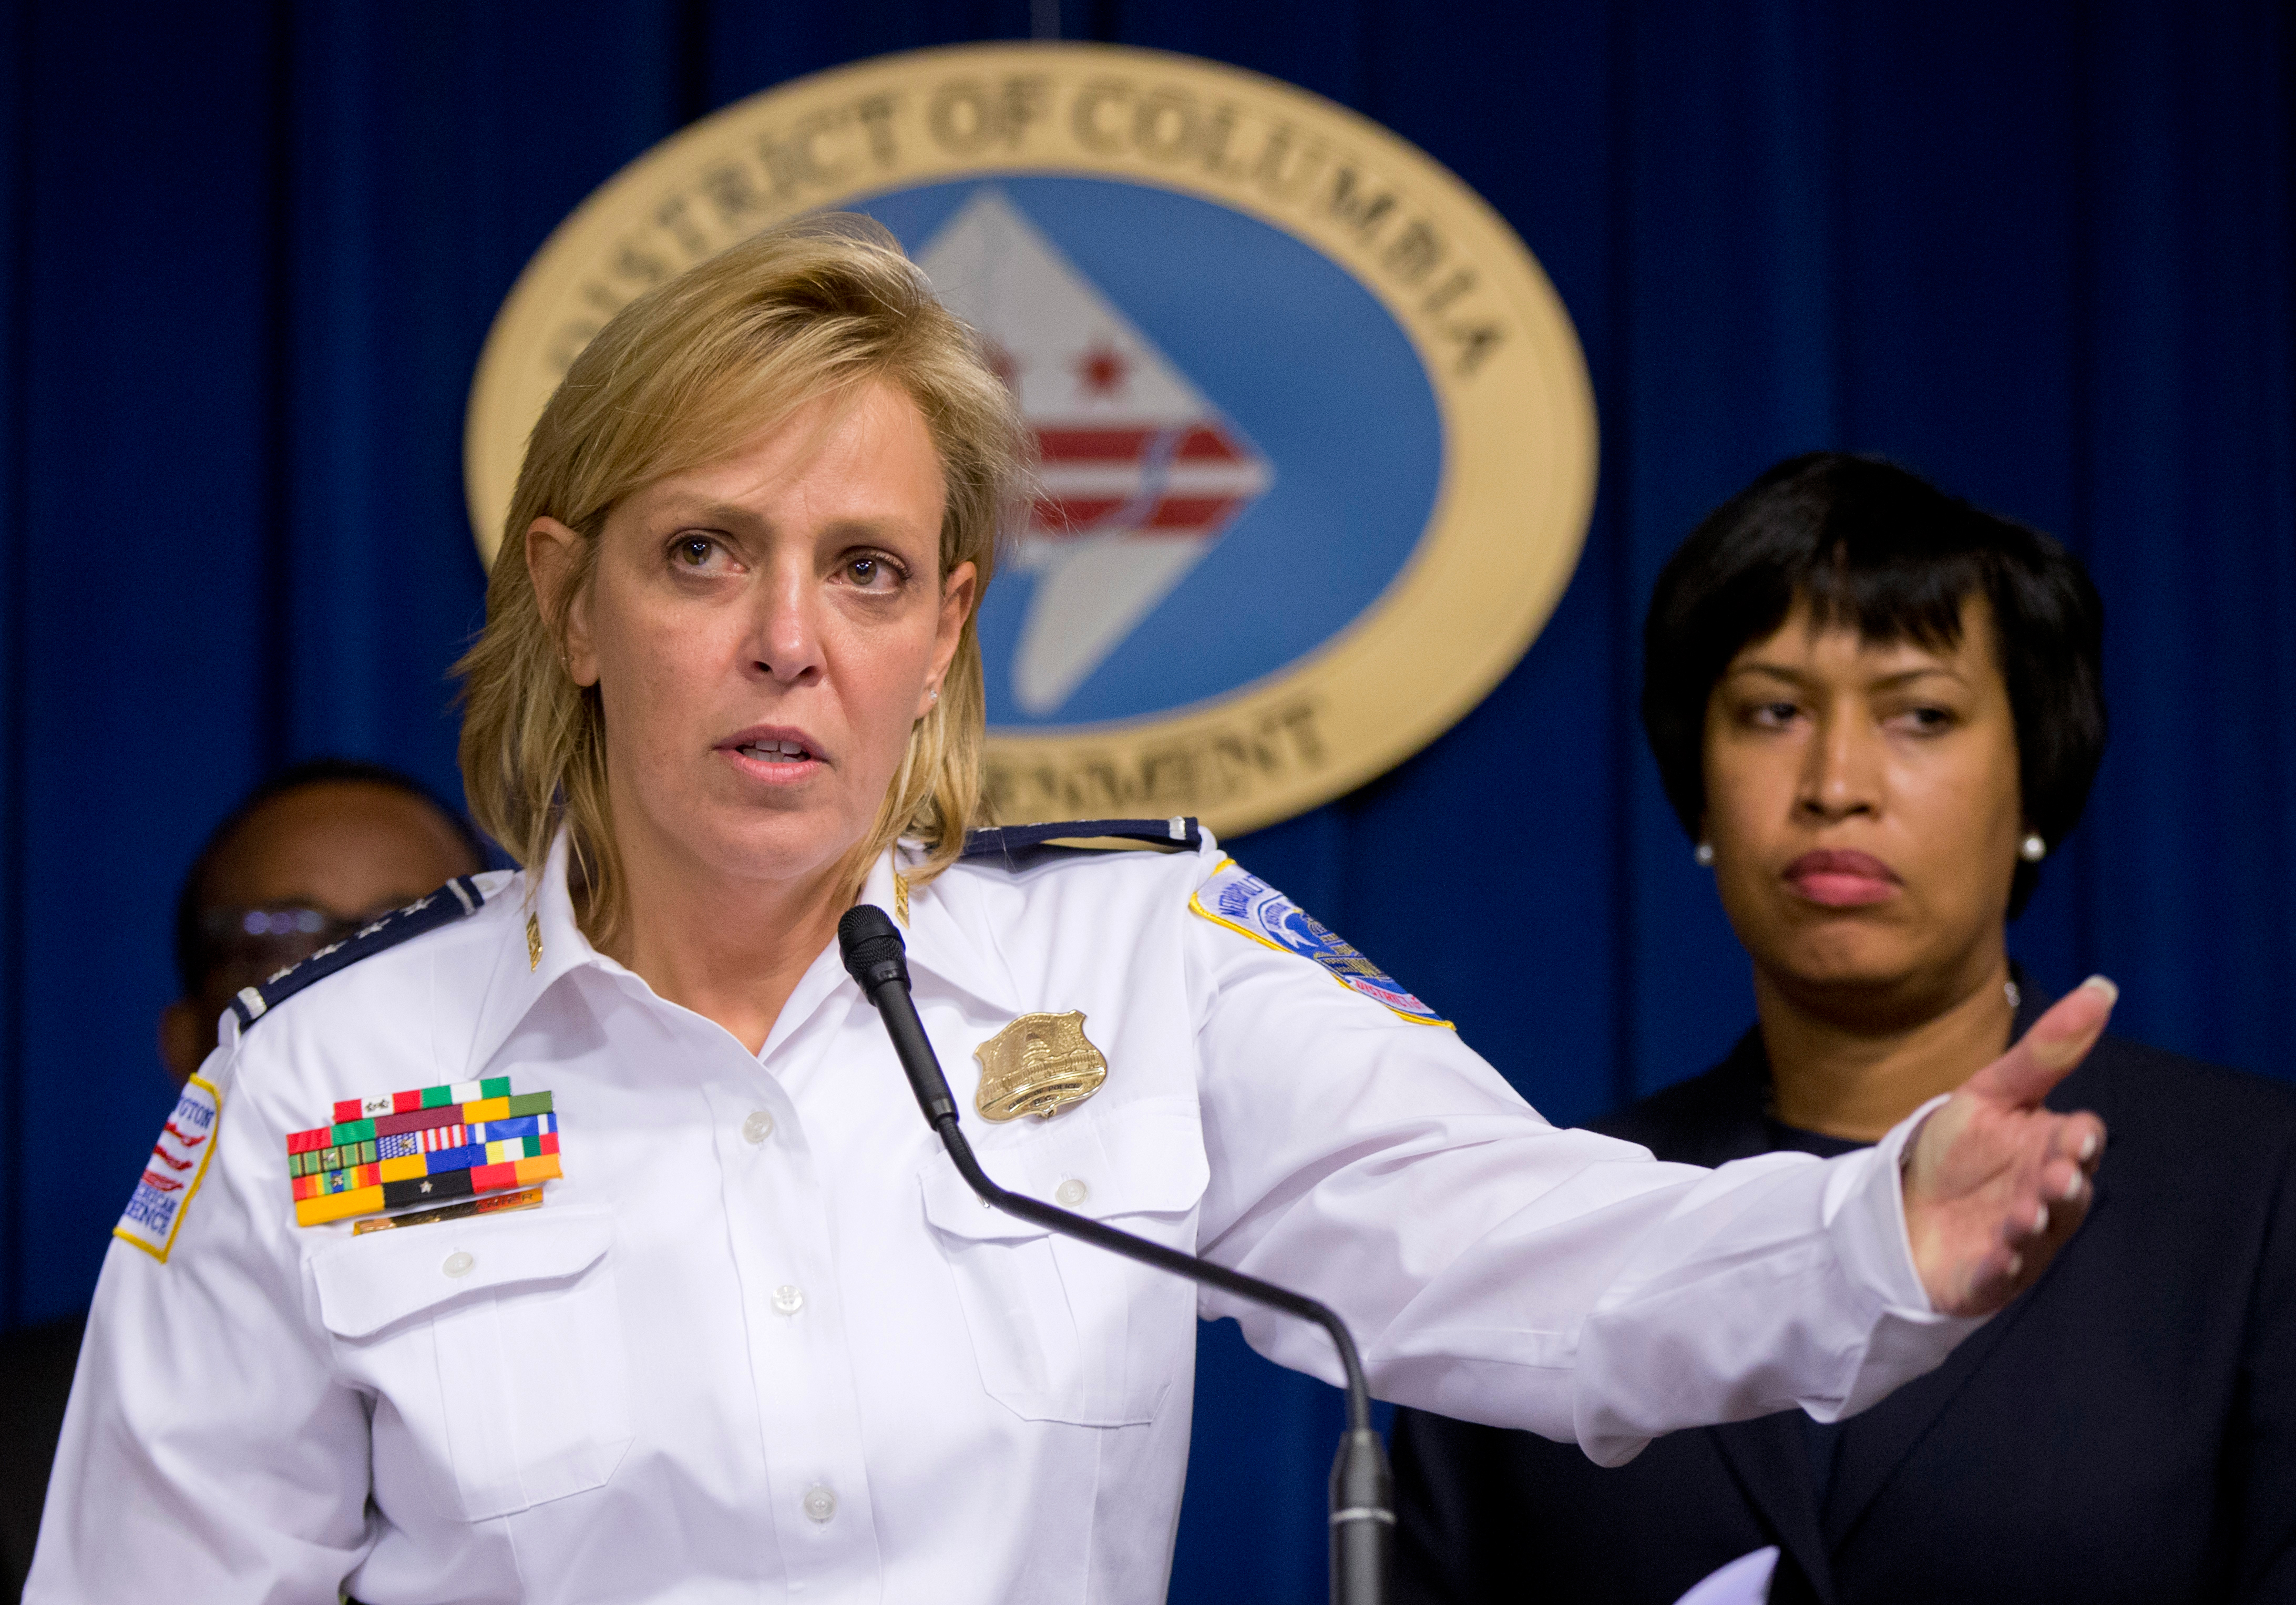 DC Police Chief Cathy Lanier stepping down to head NFL security